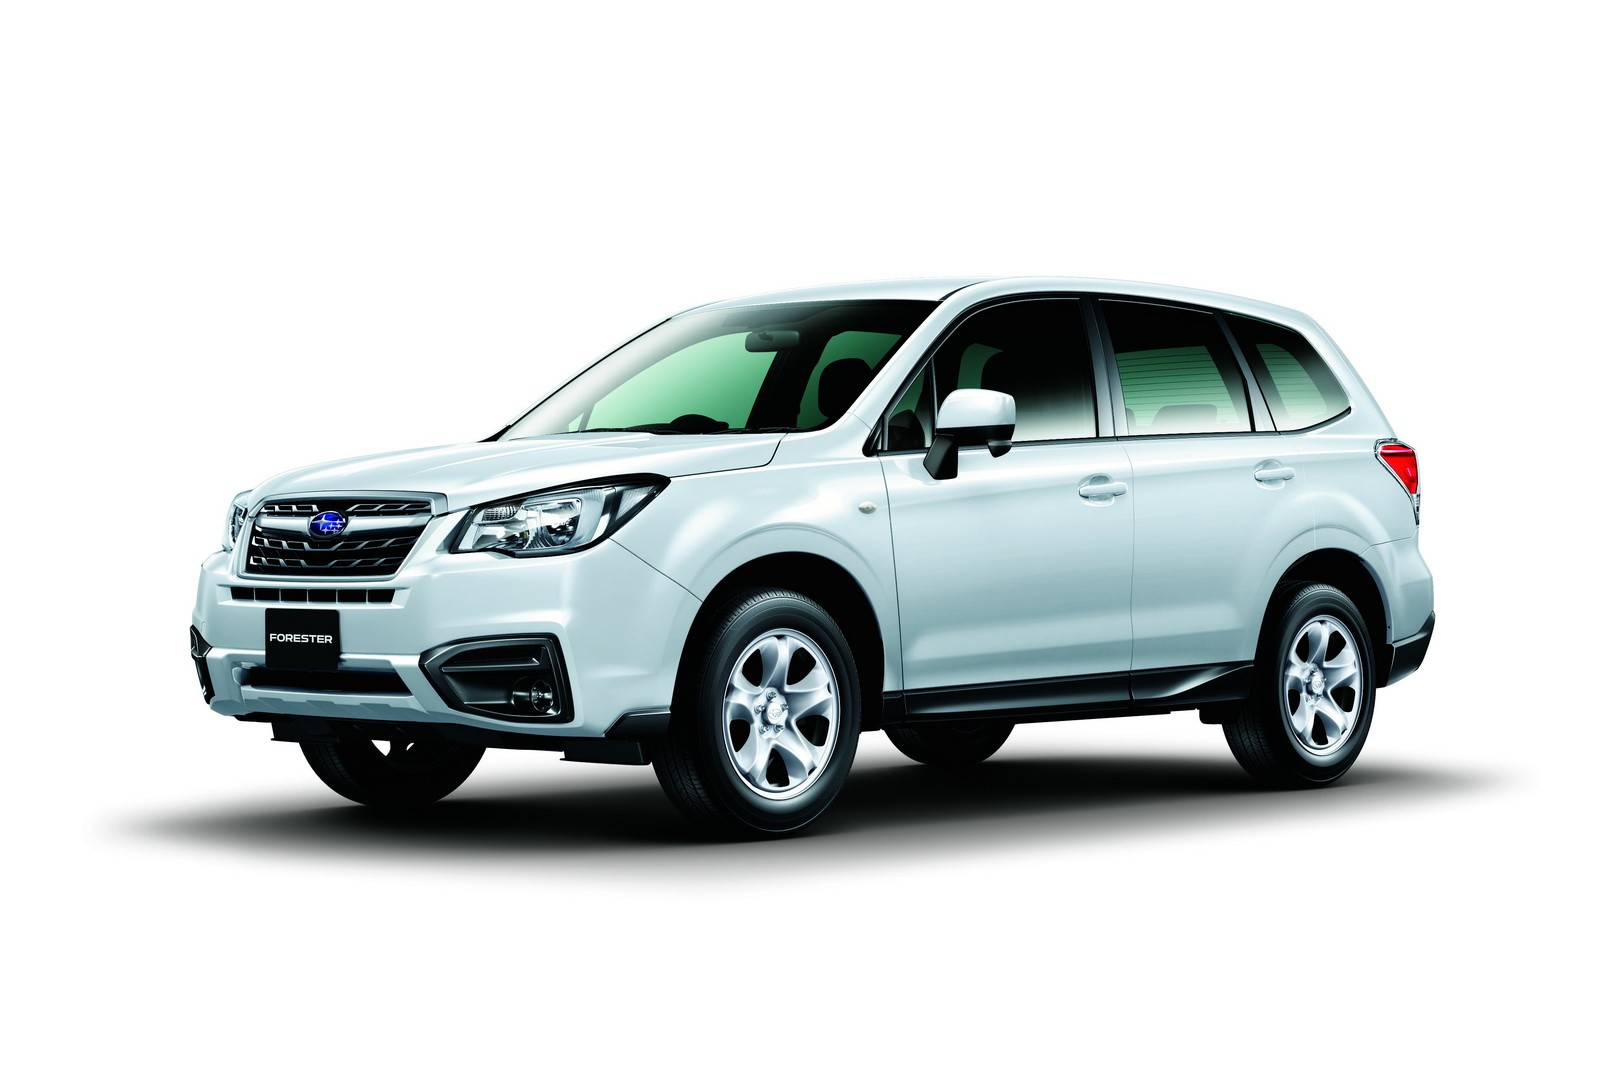 2017 subaru forester facelift revealed ahead of tokyo. Black Bedroom Furniture Sets. Home Design Ideas